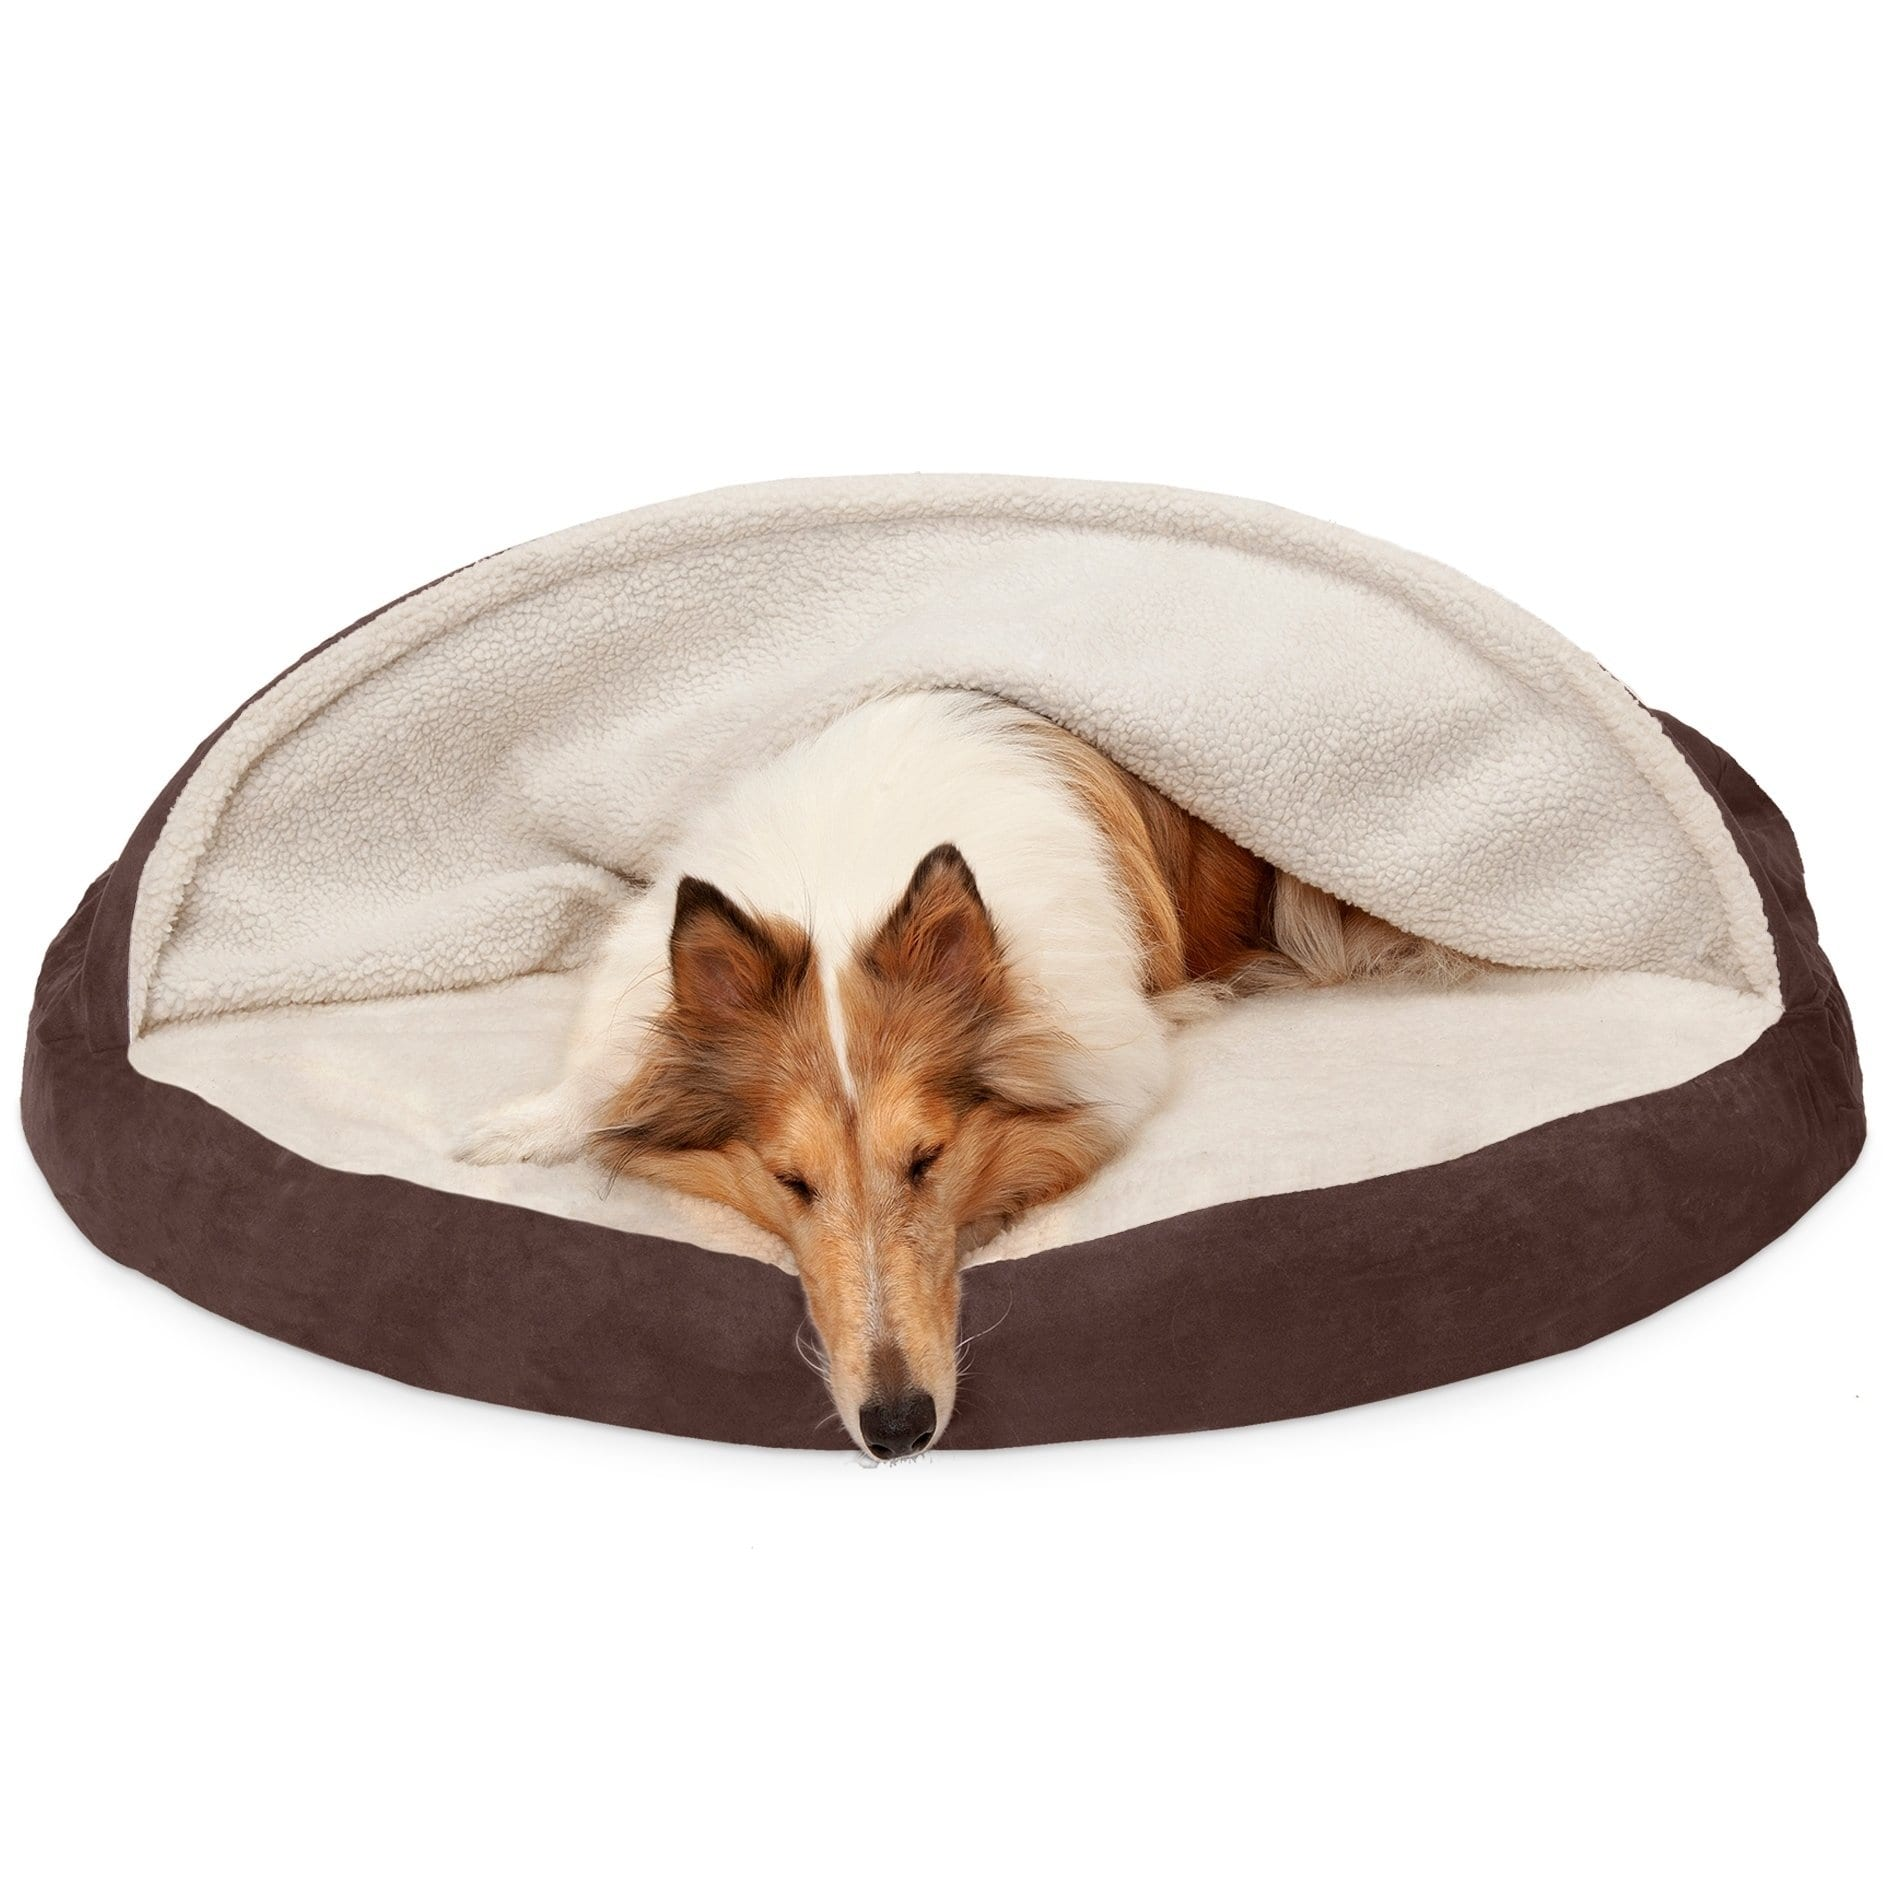 FurHaven Pet Dog Bed | Orthopedic Round Faux Sheepskin Snuggery Burrow Pet Bed for Dogs & Cats, Espresso, 44-Inch